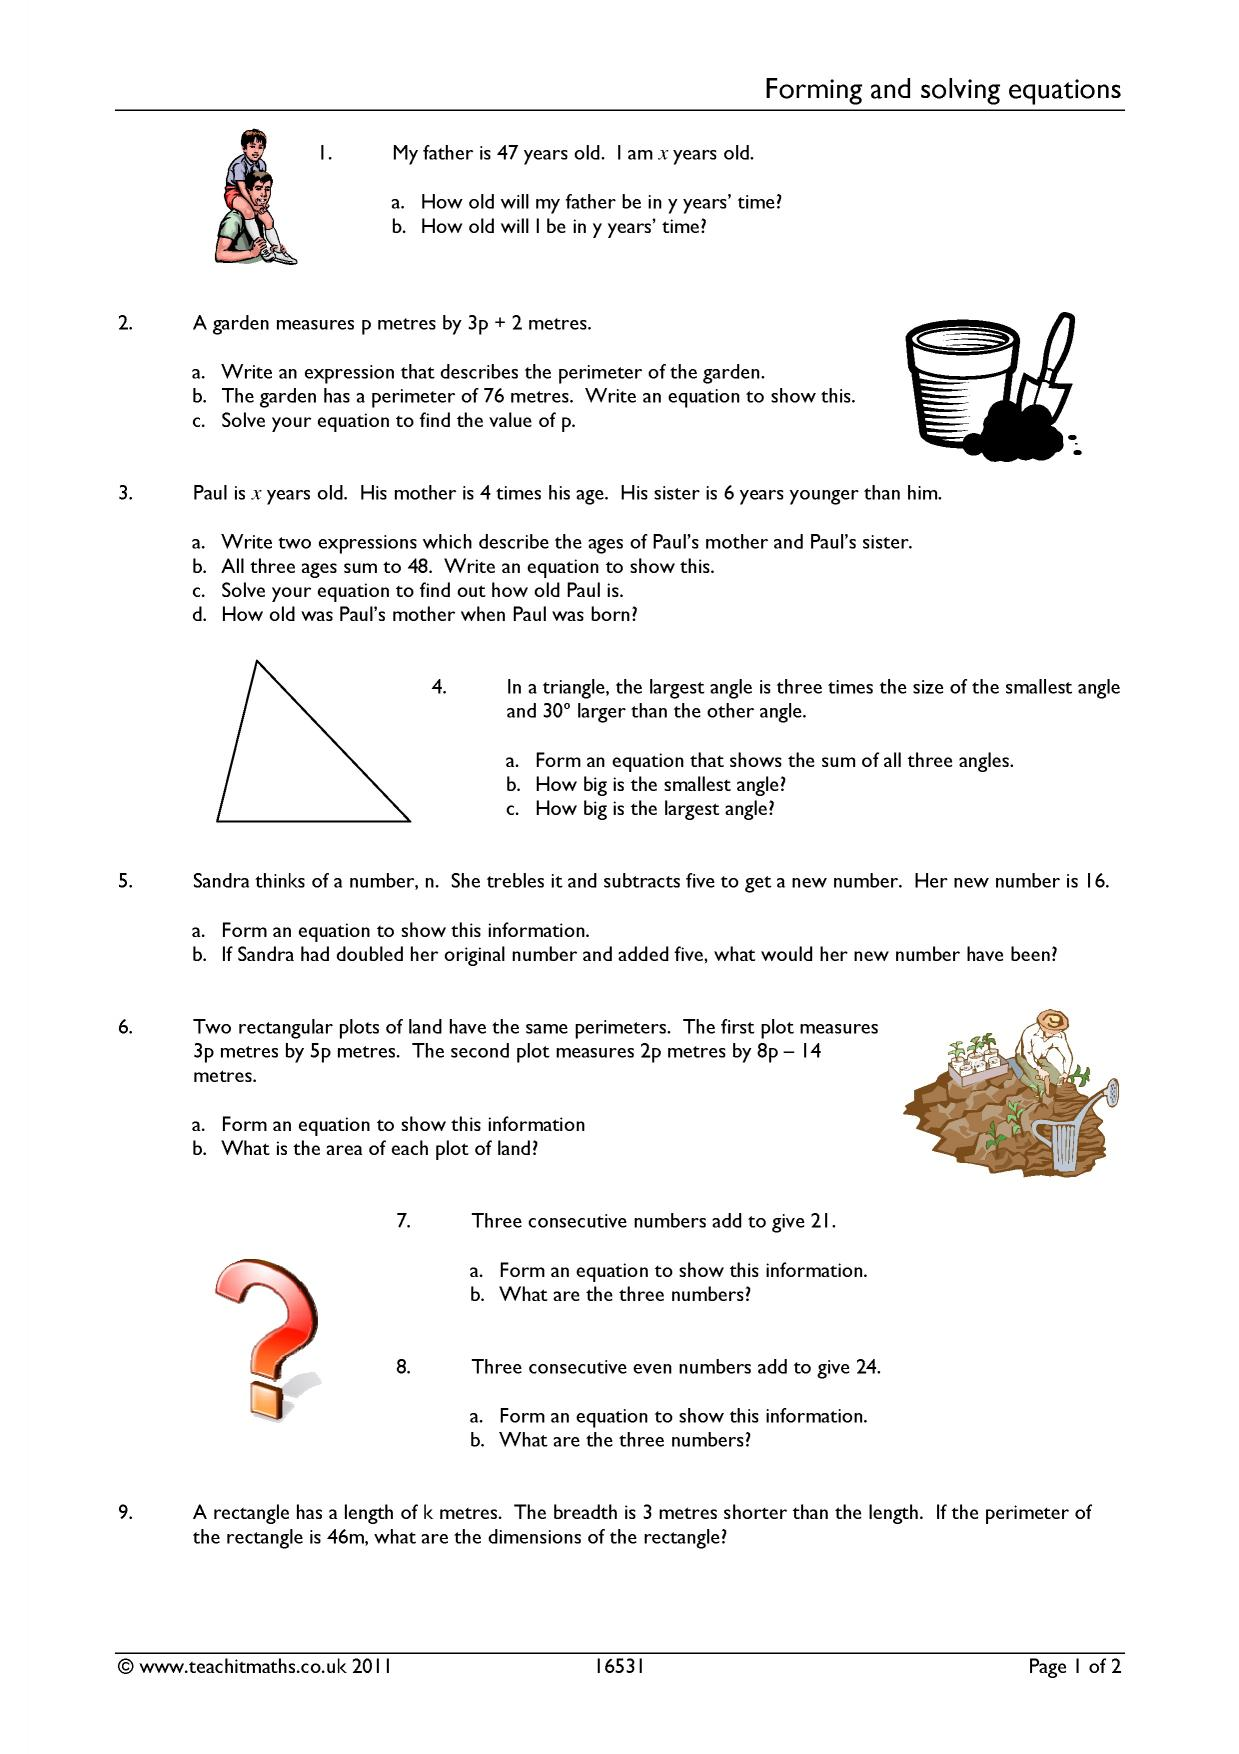 Forming And Solving Equations Worksheet Gcse